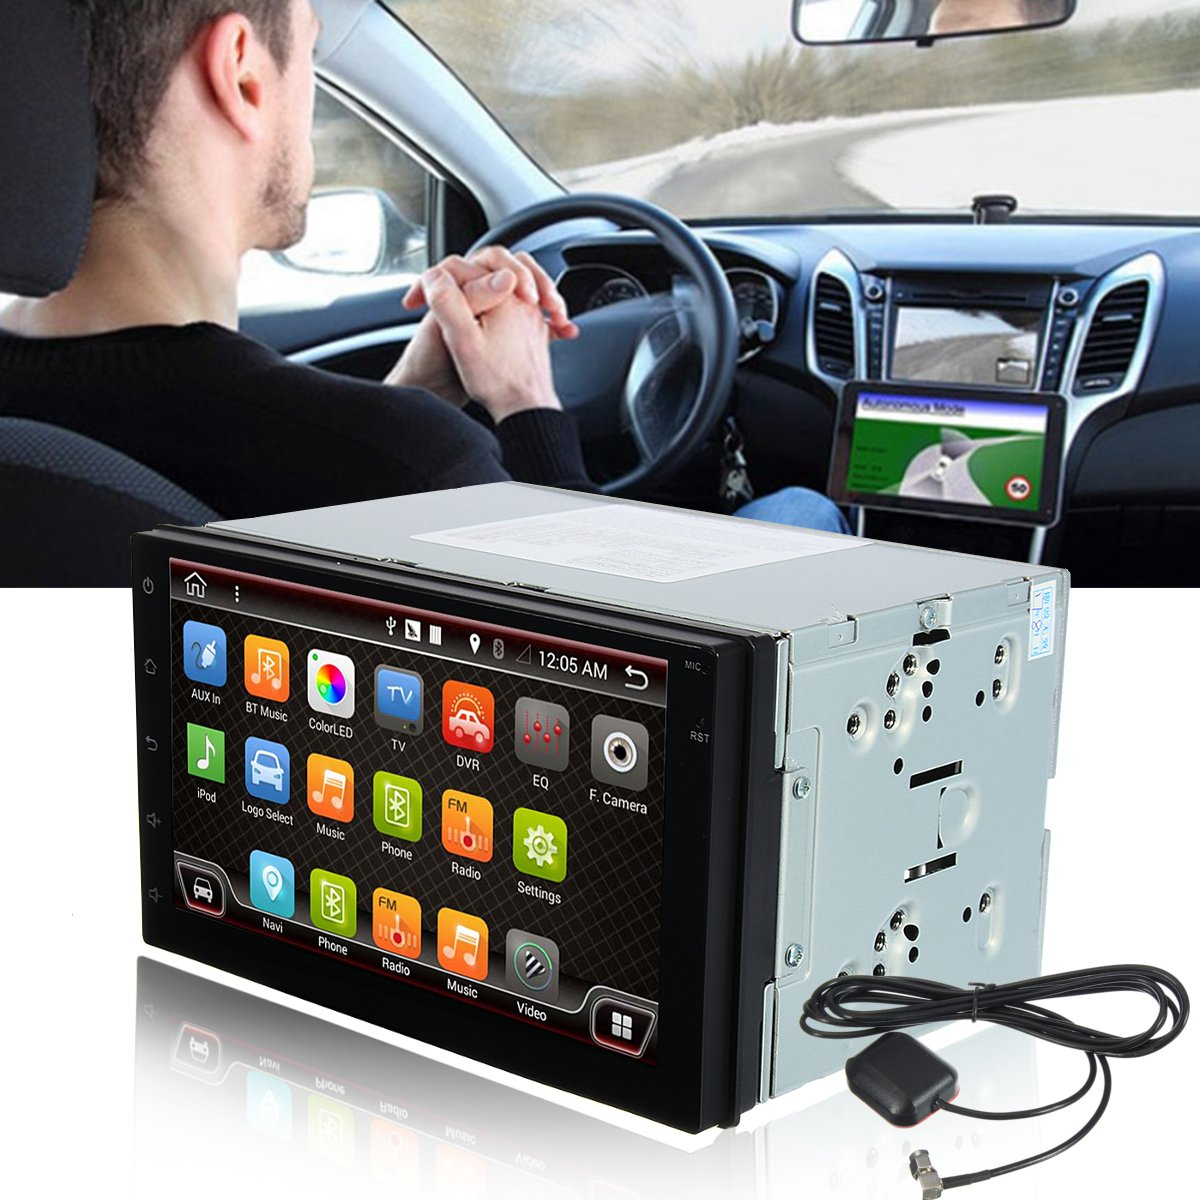 7 Inch Android 6.0 Double 2 DIN Sat Navigation Car GPS Navigation Stereo DAB